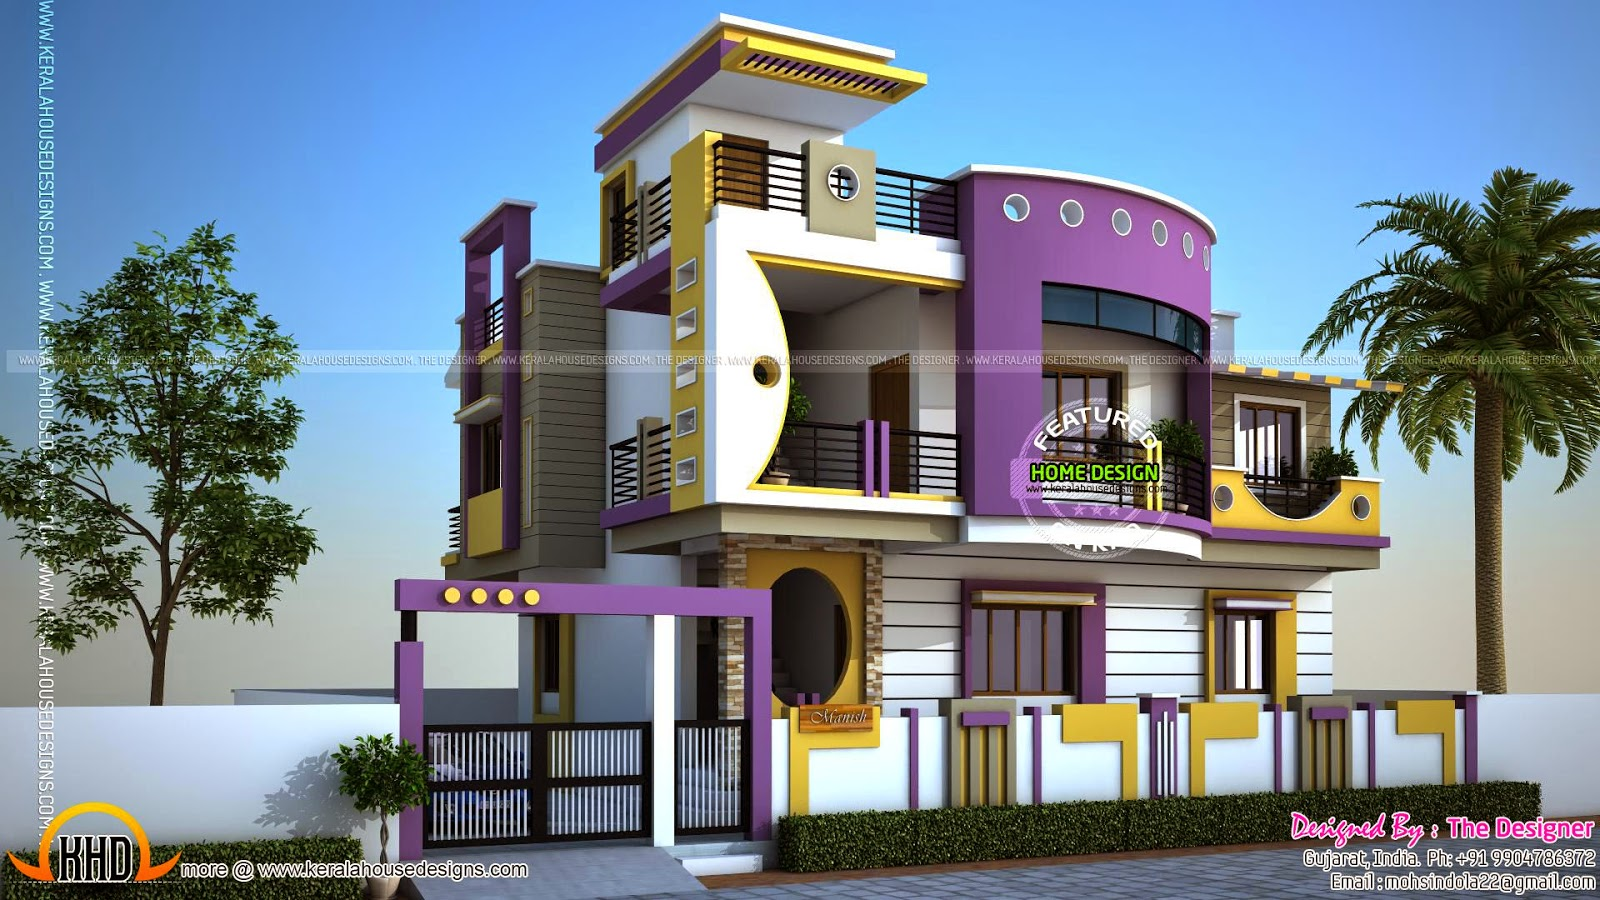 House exterior designs in contemporary style kerala home for Exterior design building